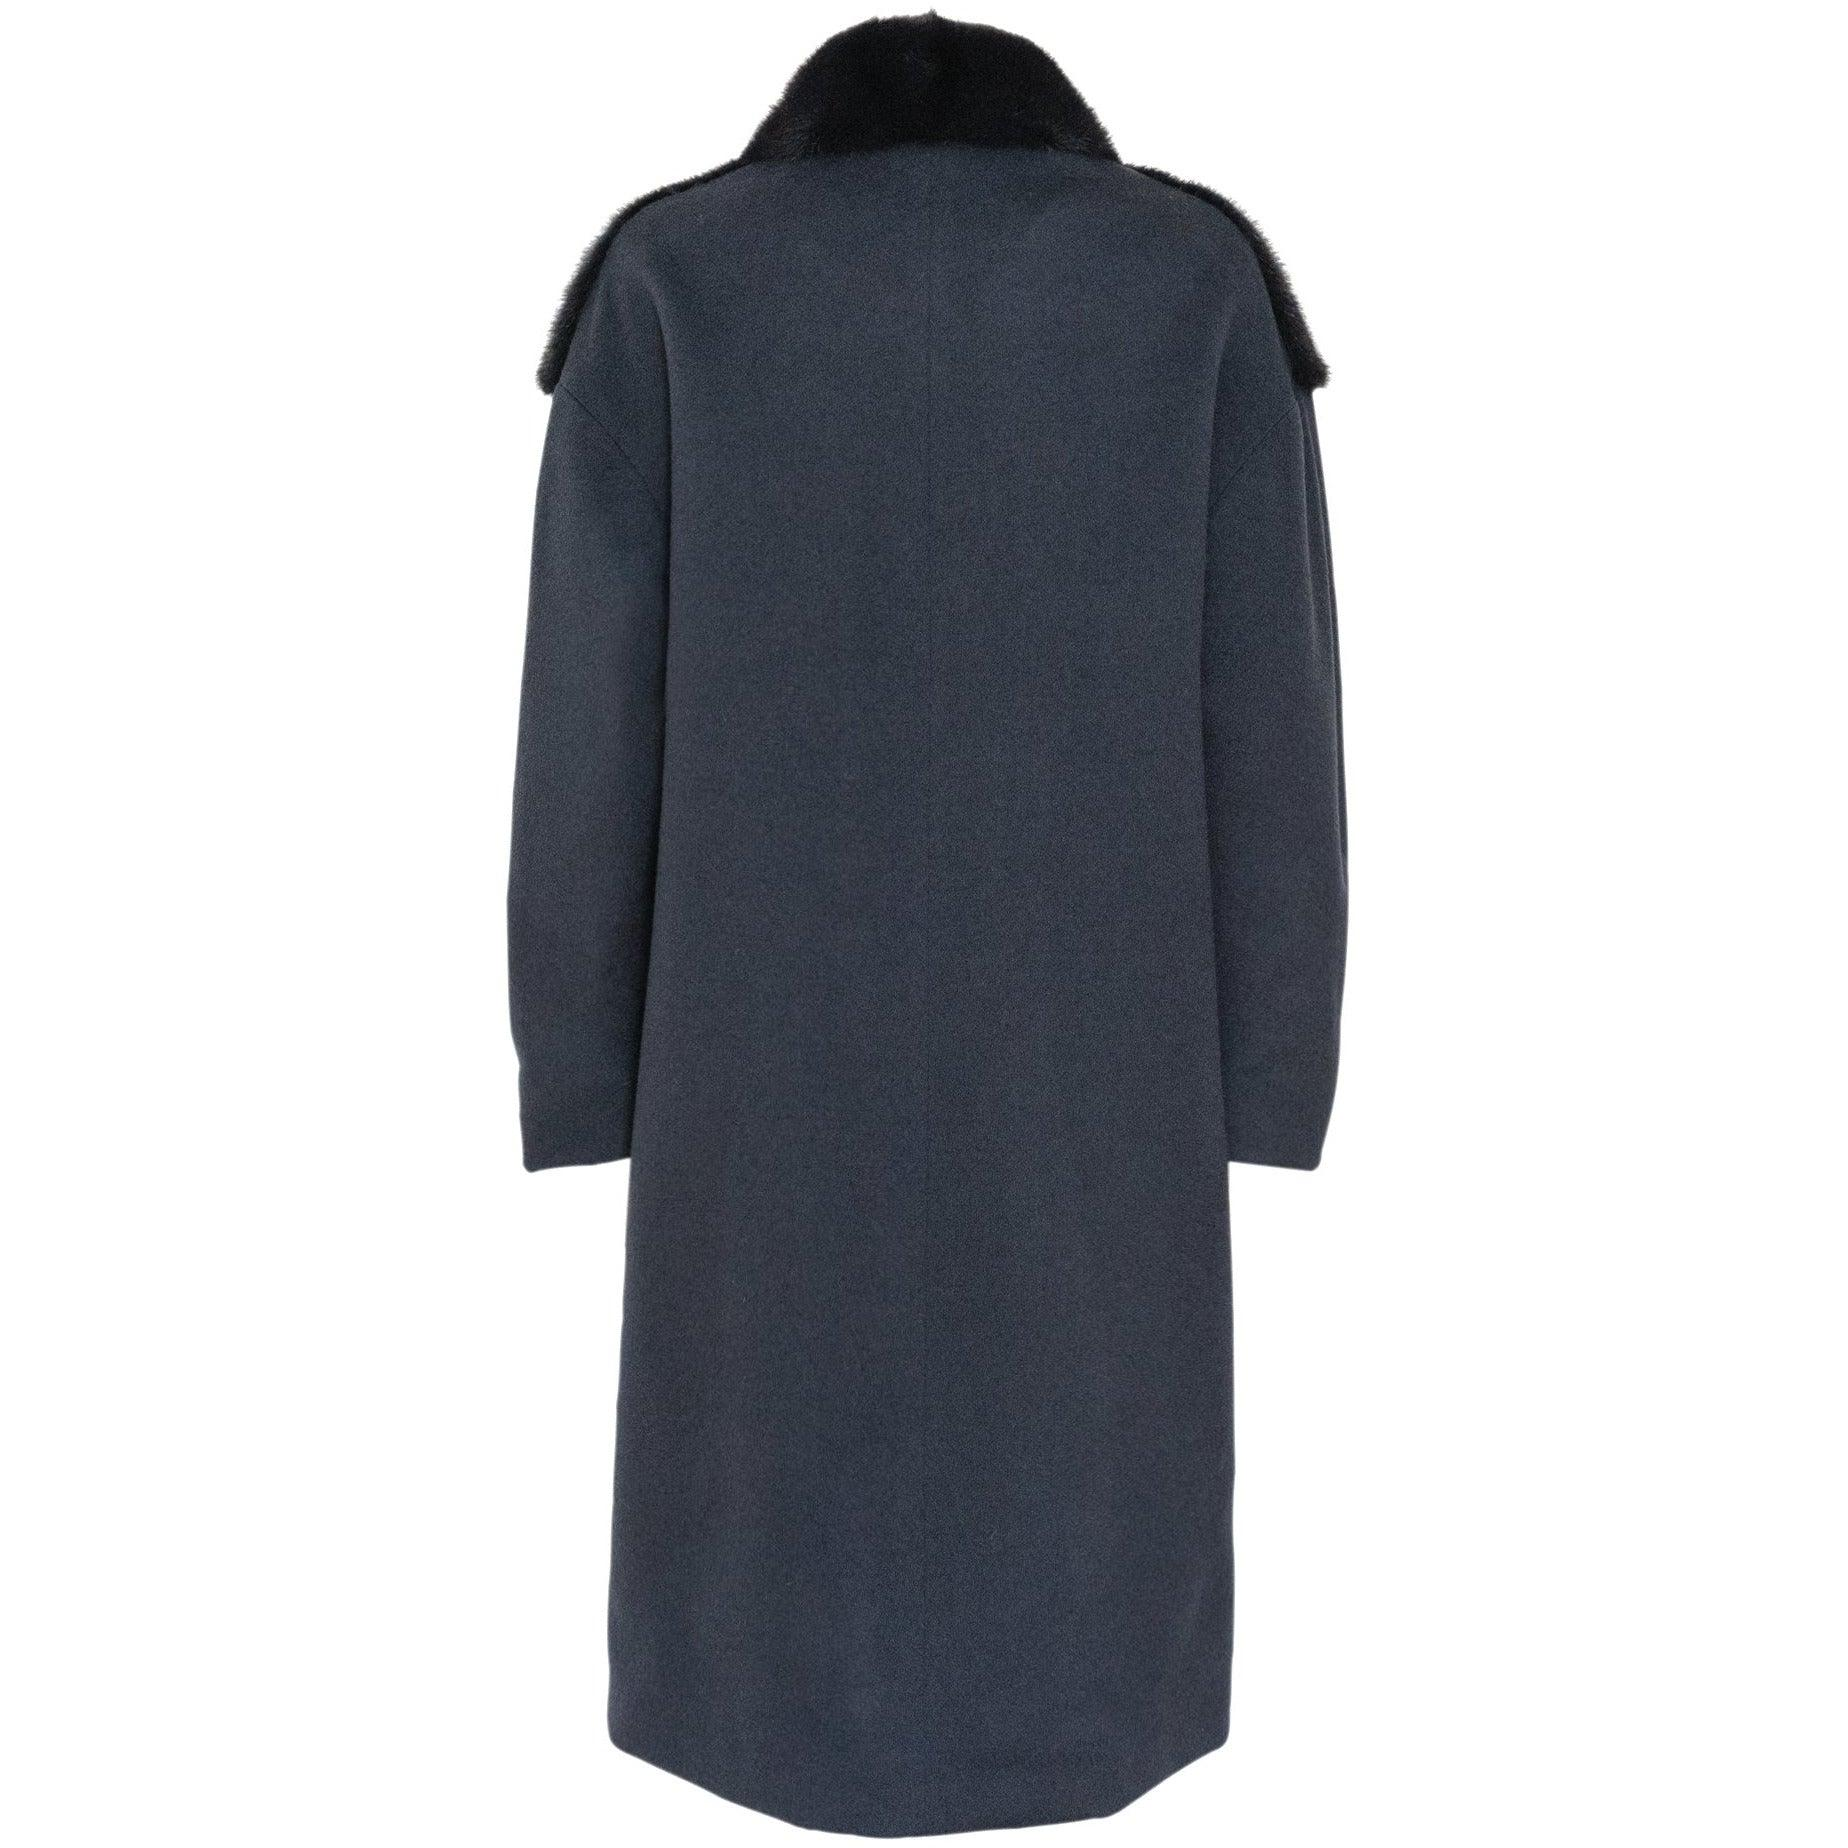 REVERSIBLE CASHMERE LONG COAT WITH MINK COLLAR - ROS1822 New 2020 Collection